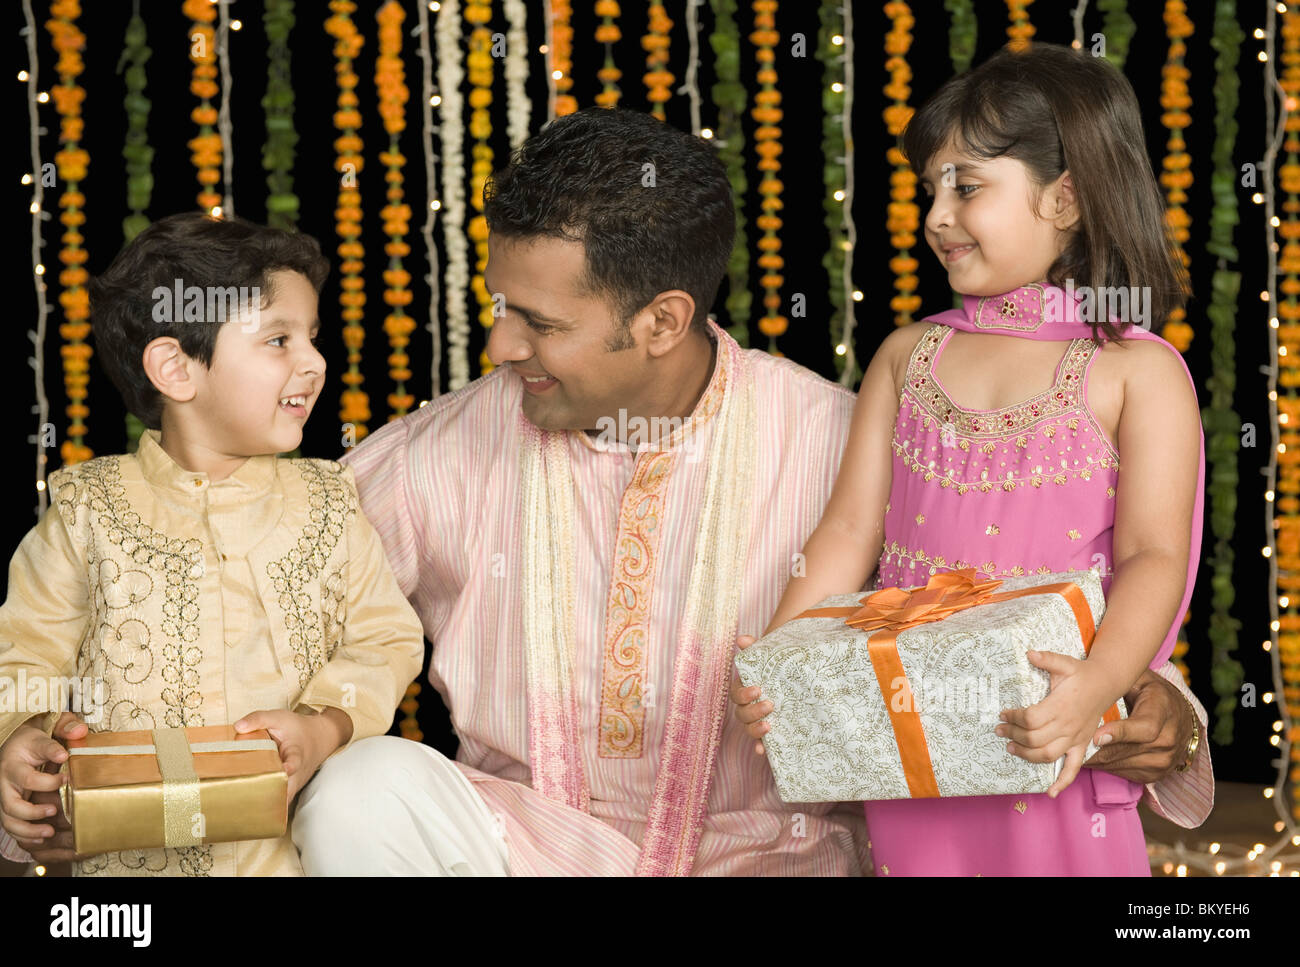 Family holding Diwali gifts Stock Photo: 29492994 - Alamy for Diwali Gifts For Family  113lpg